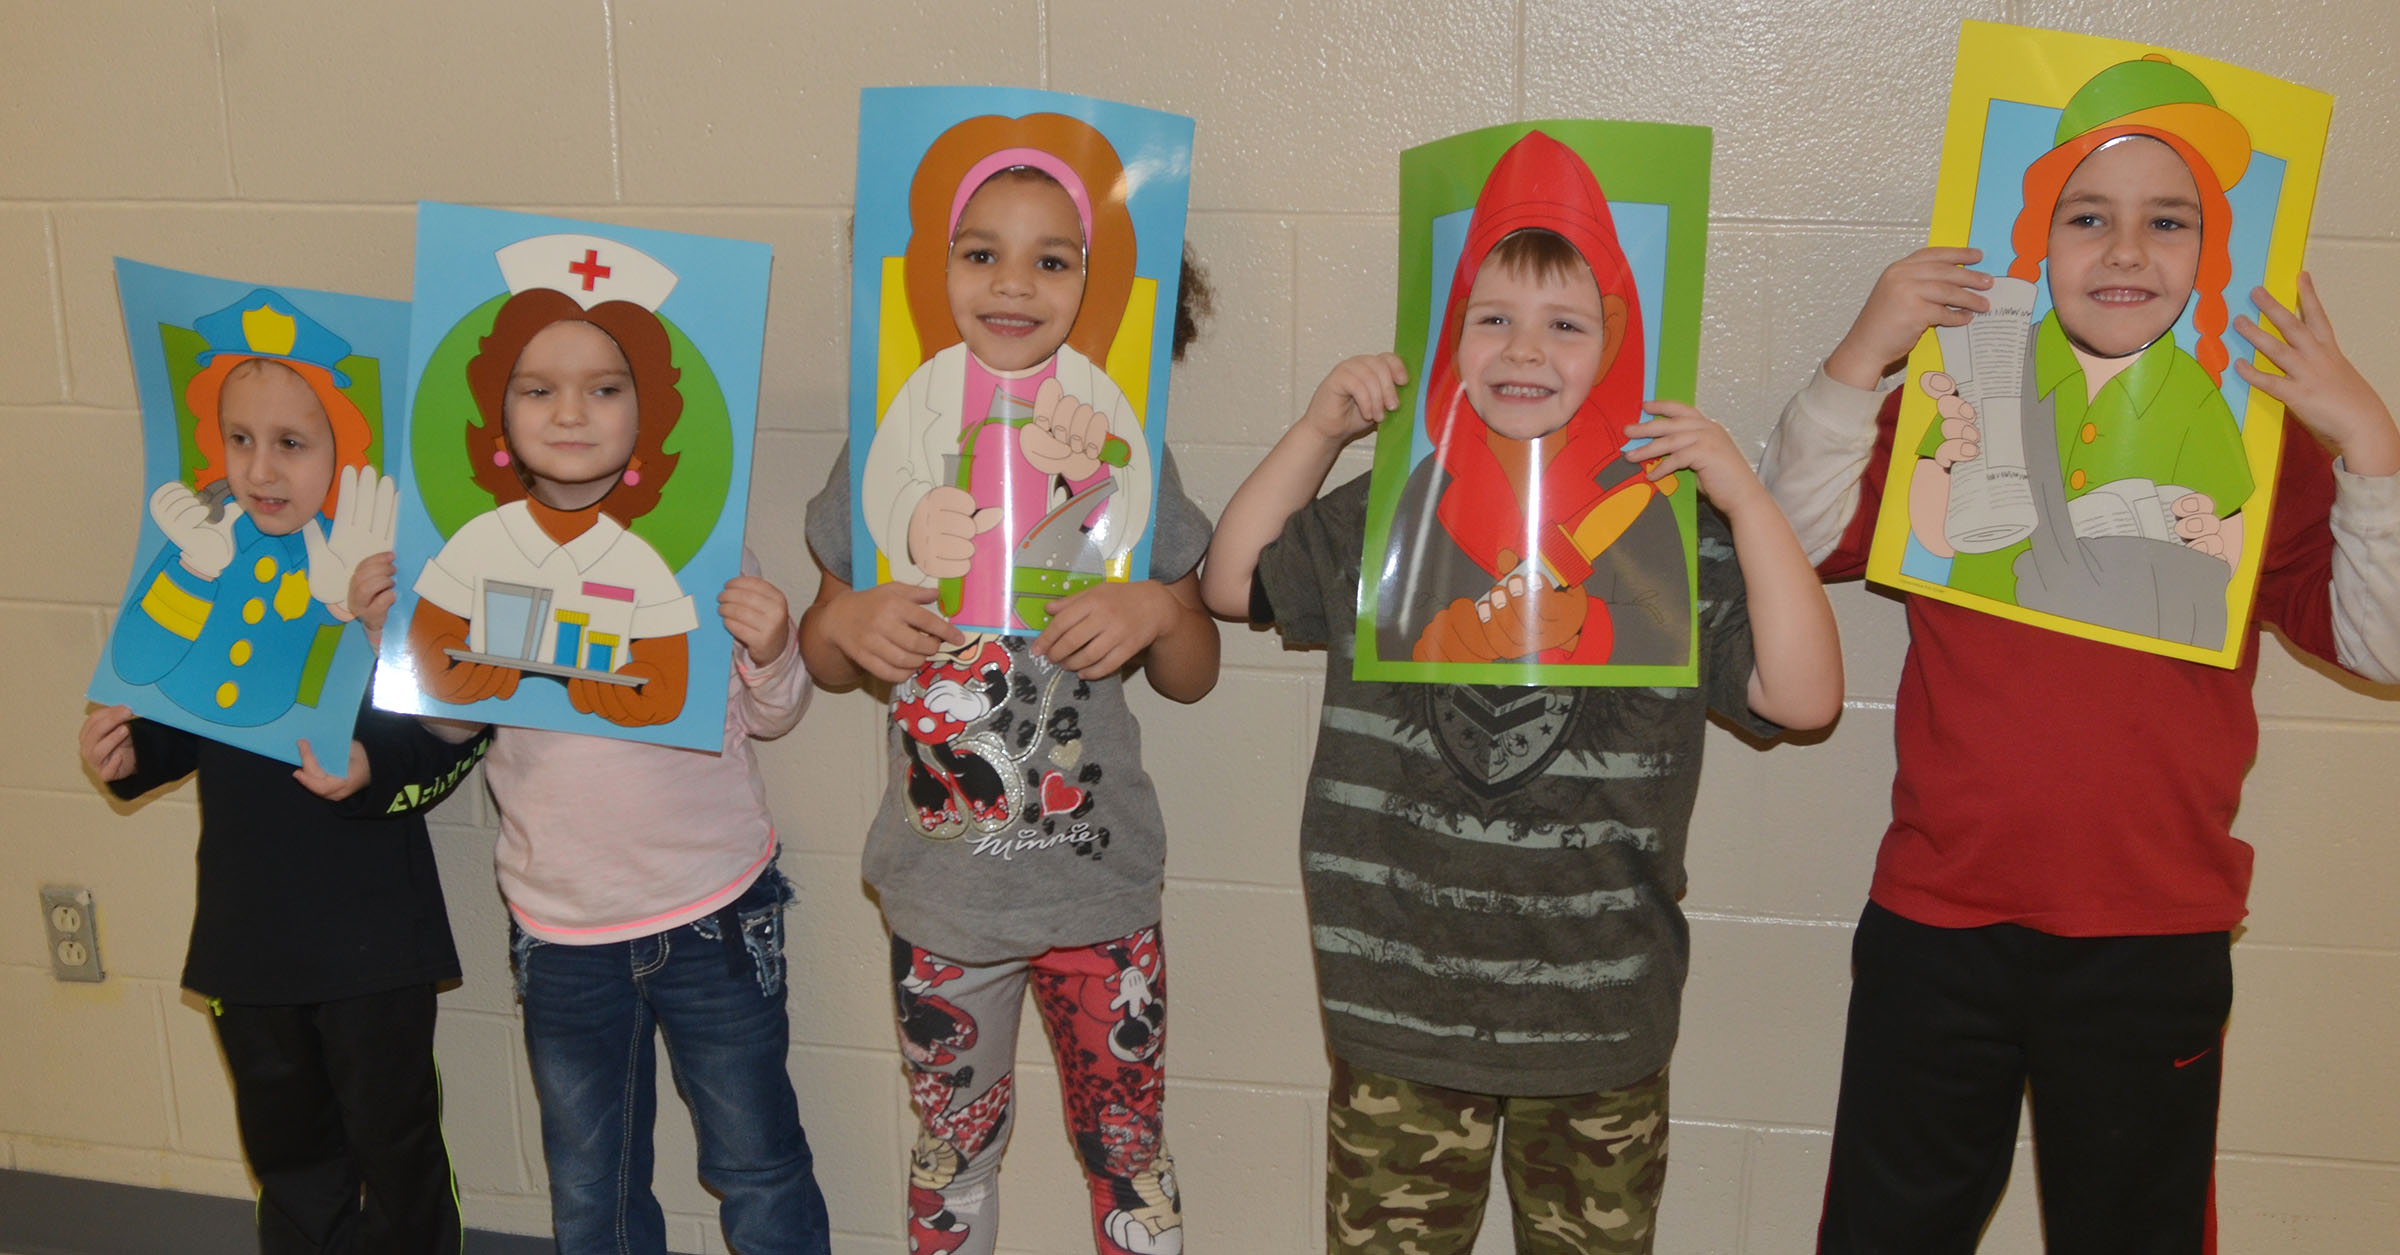 CES kindergarteners pose as the community helpers they hope to be when they grow older. From left are Gavin Paris, Miley Orberson, Aleeya Spaulding, Enrique McDonald and Braxton Rhodes.